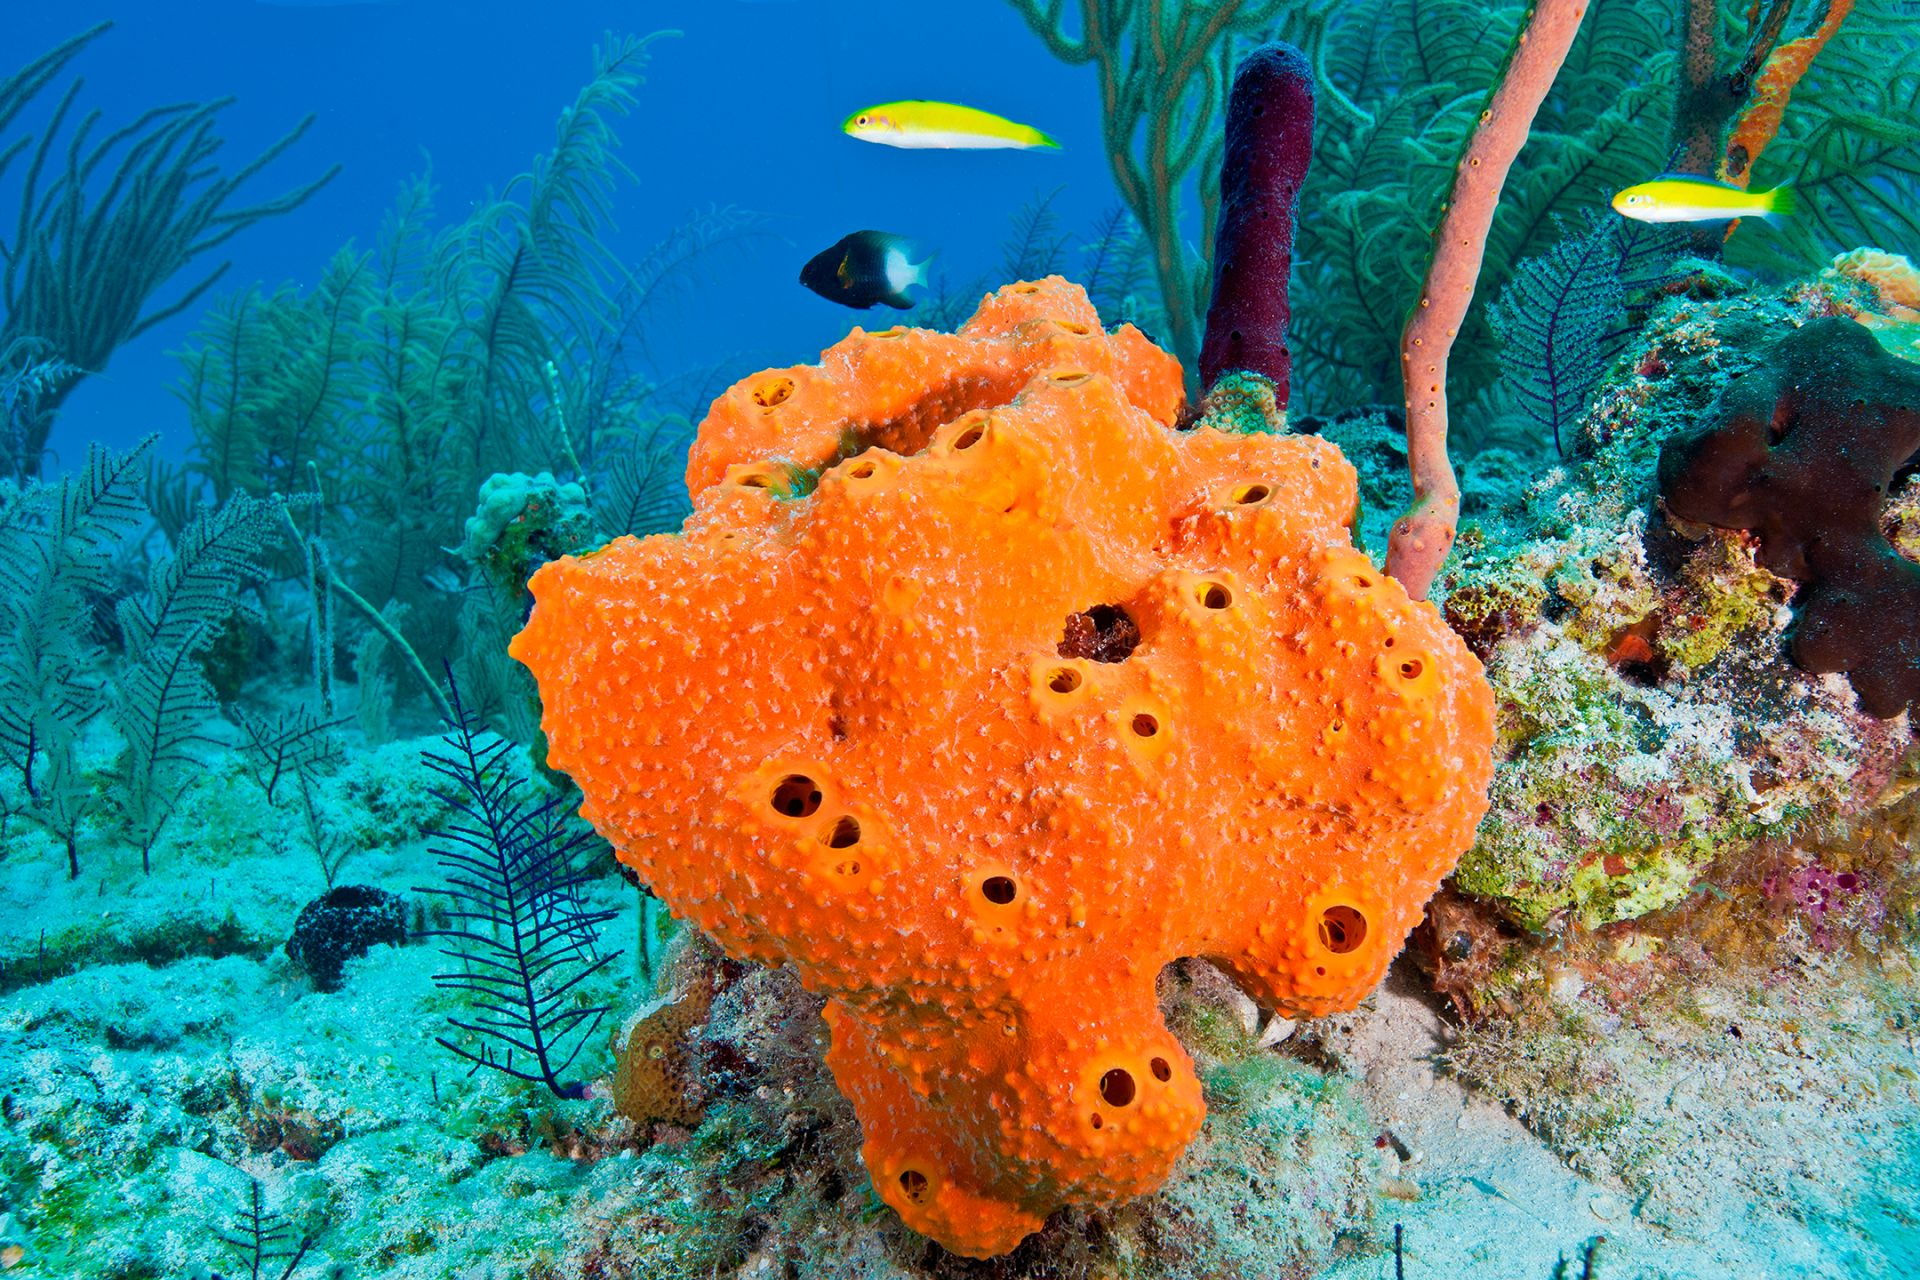 All Around Auto >> Sea Sponge Facts | Types of Sponges | DK Find Out